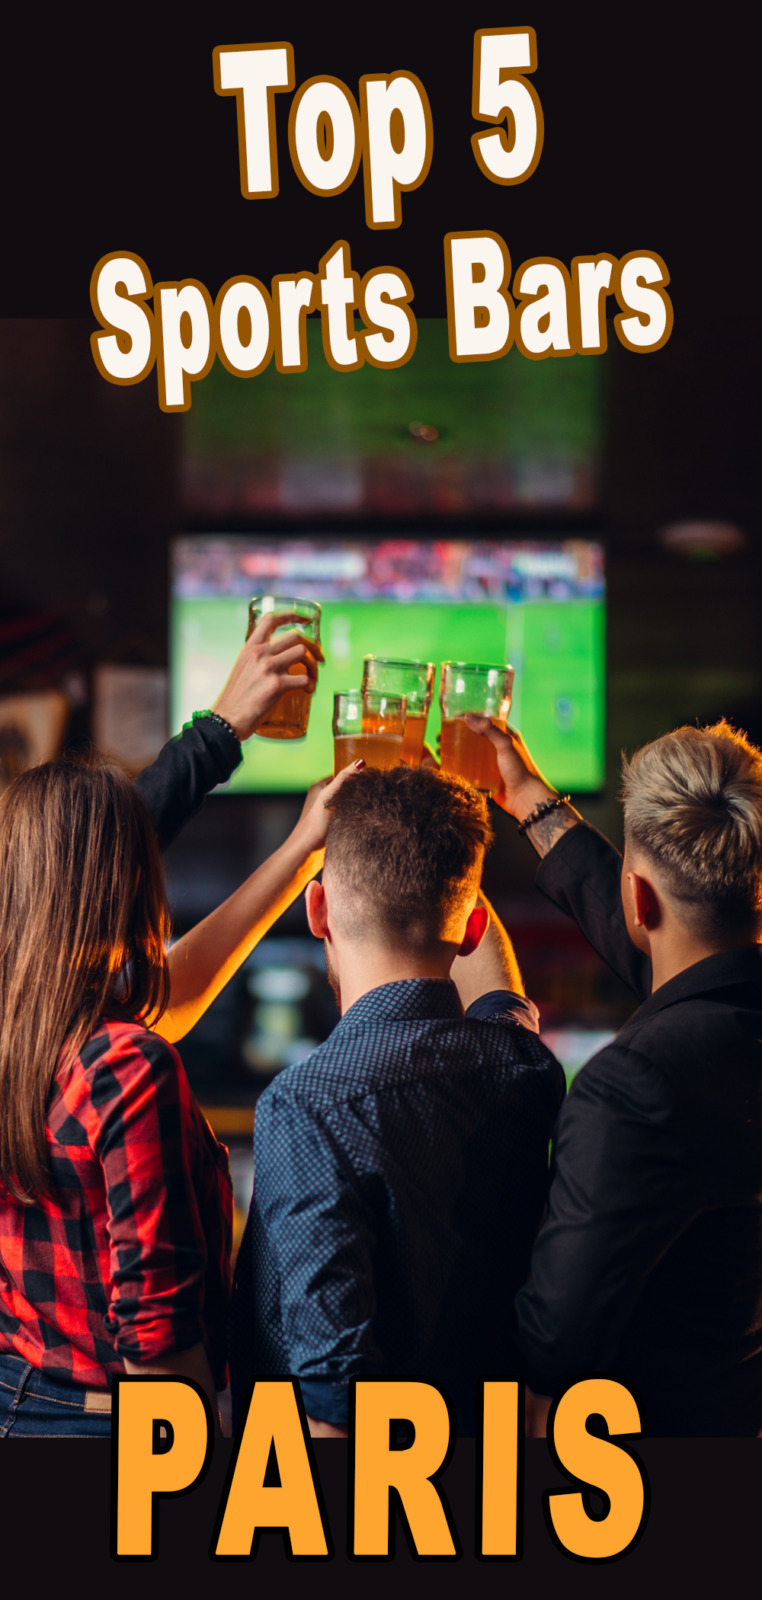 Paris Sports Bars Pinterest by French Moments